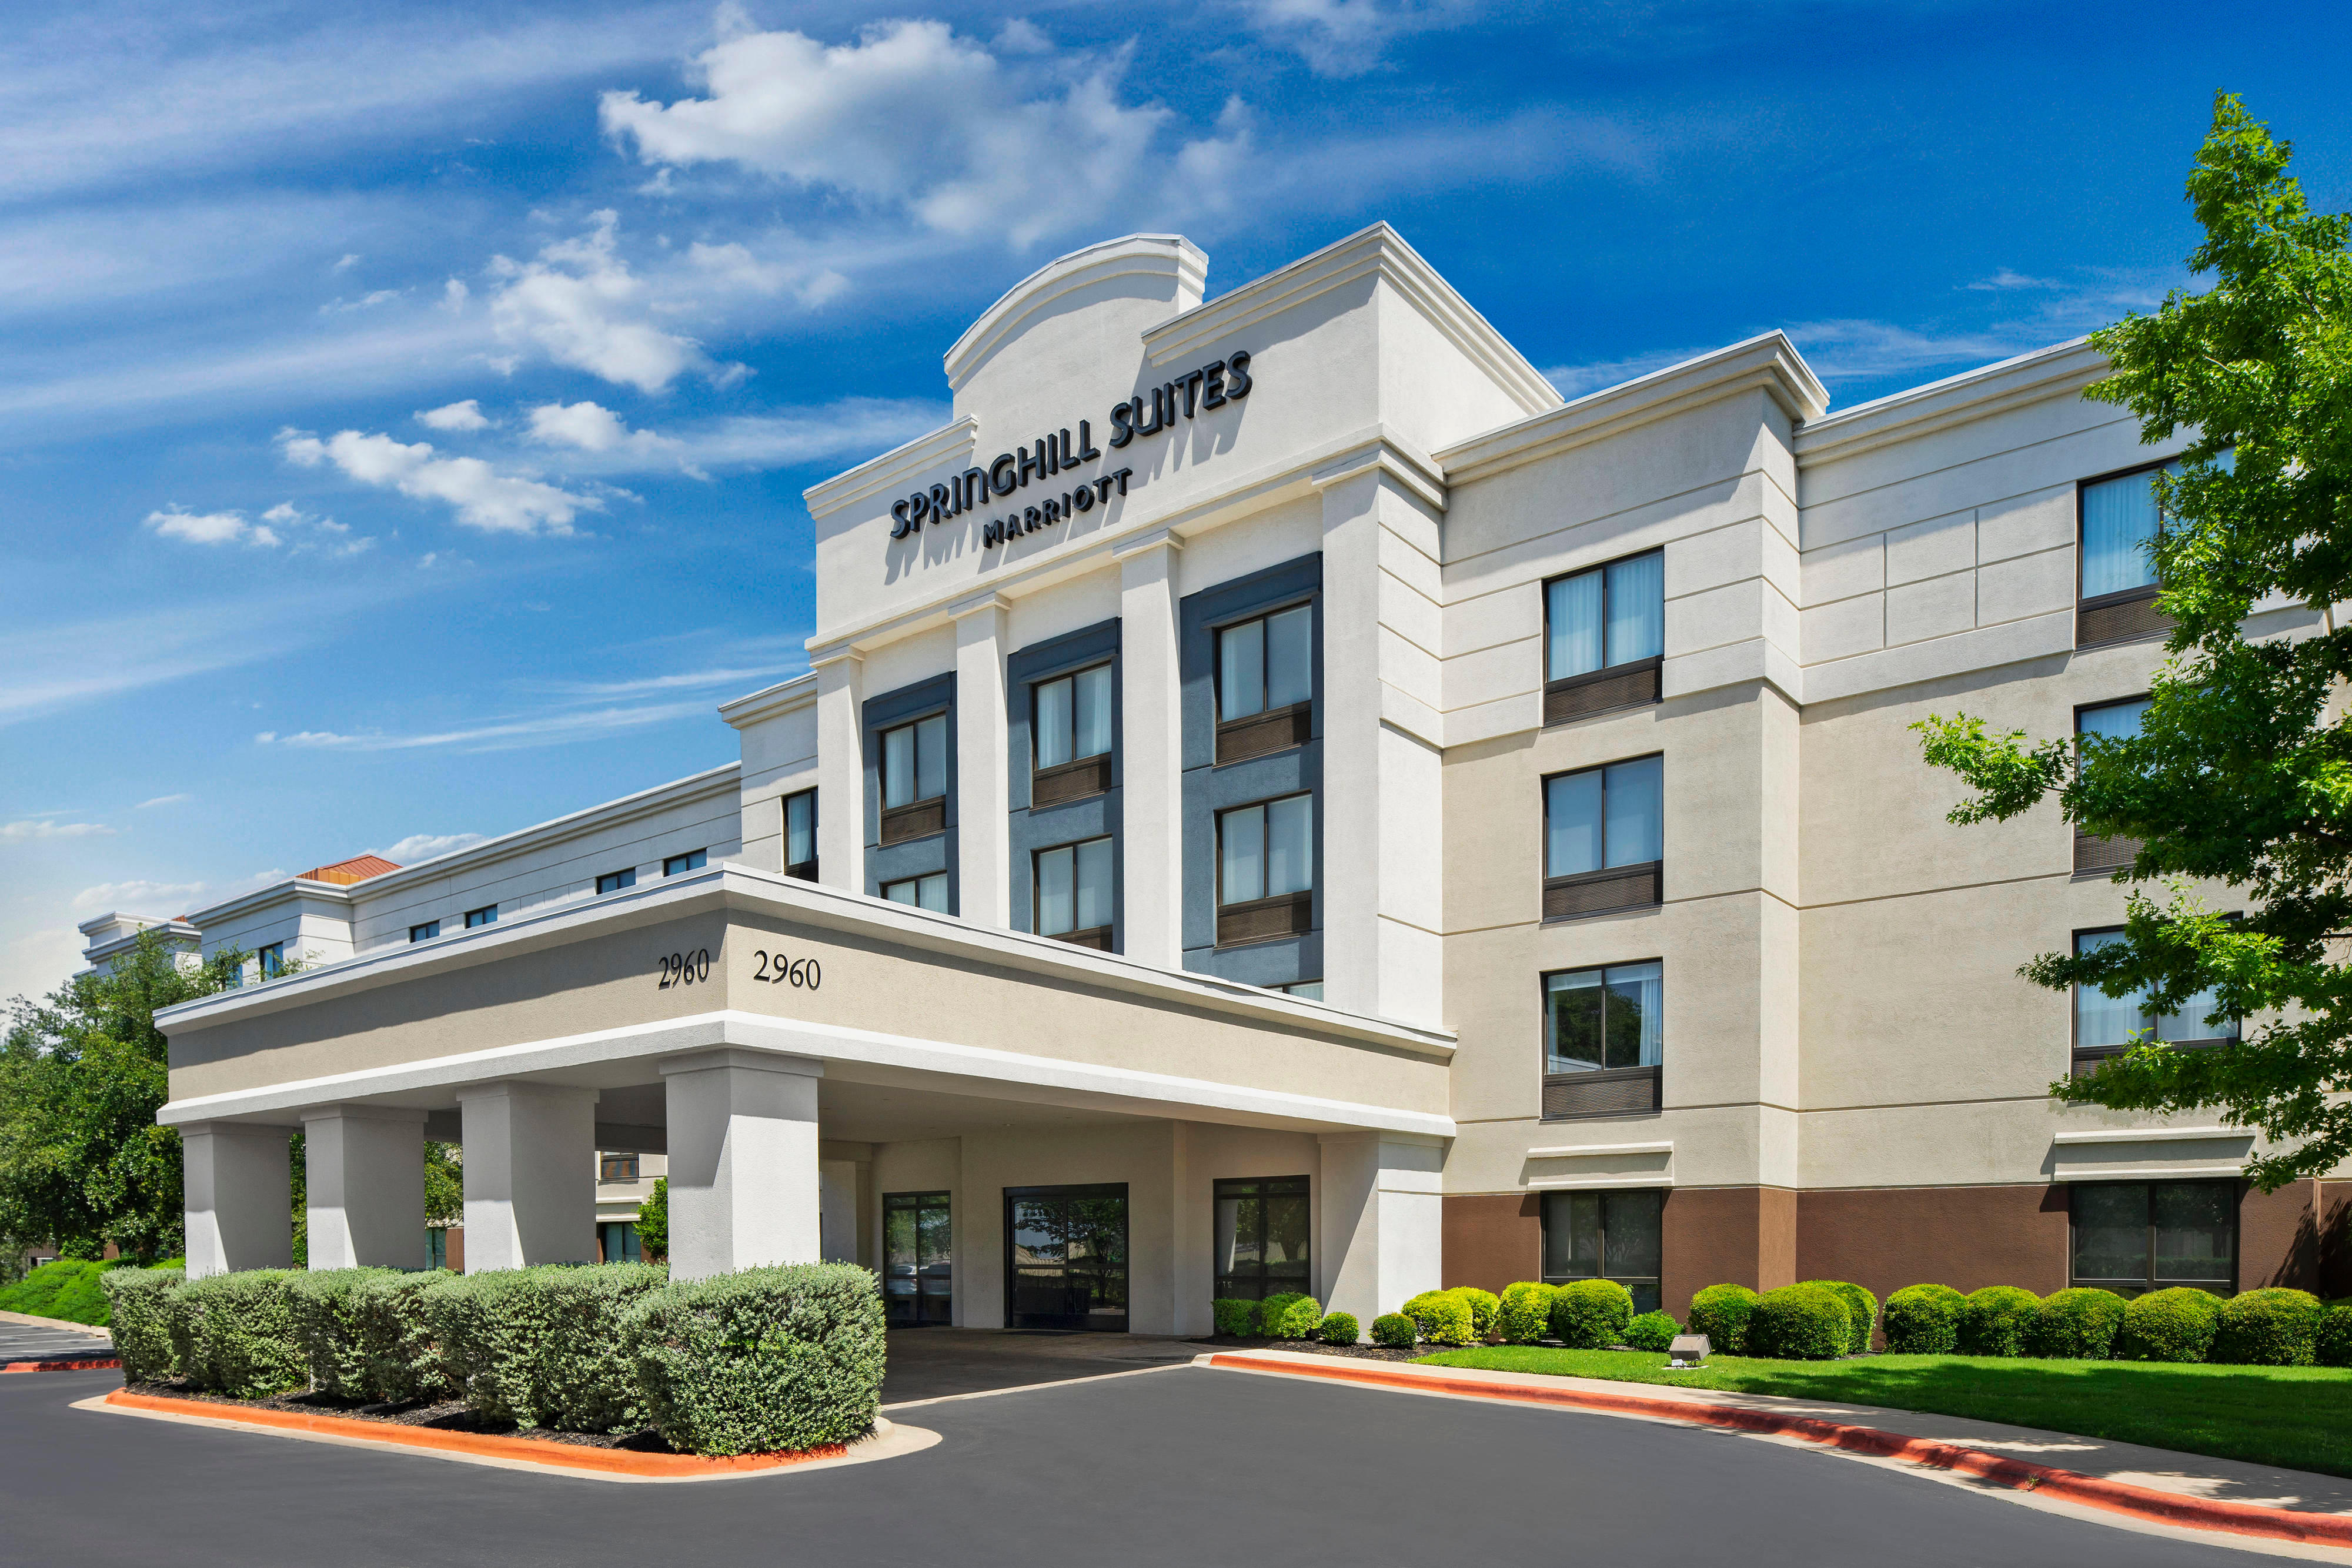 SpringHill Suites by Marriott Austin Round Rock image 0